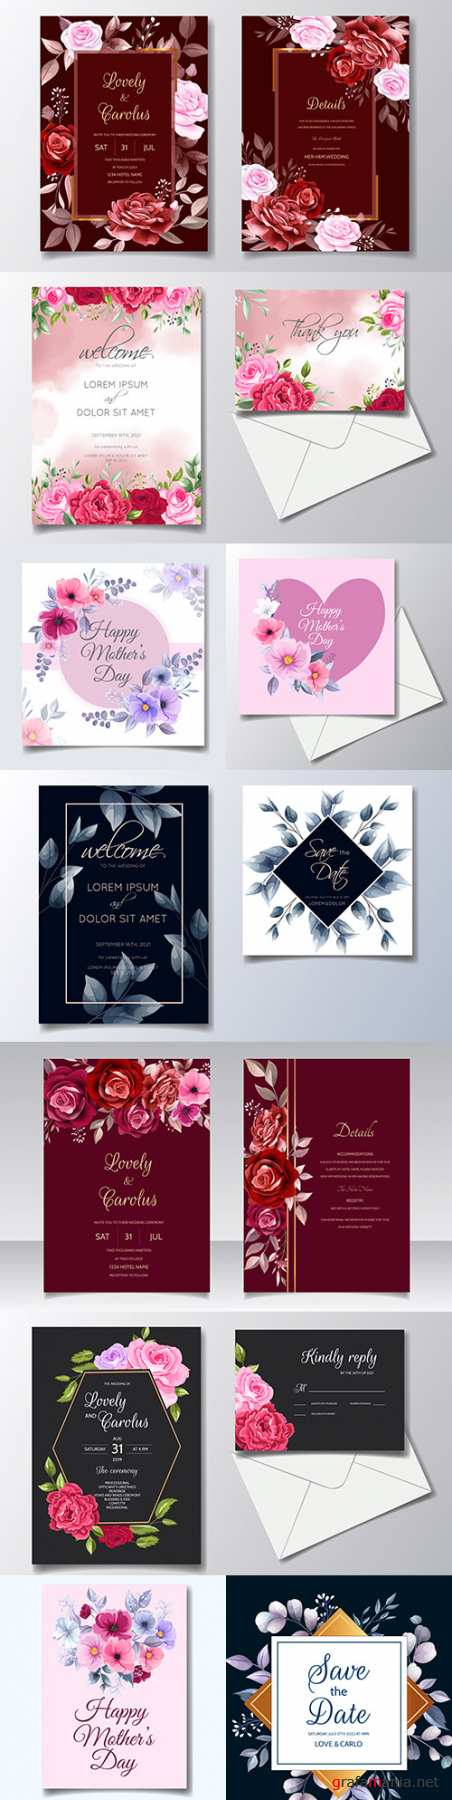 Happy mother's day and wedding invitation design